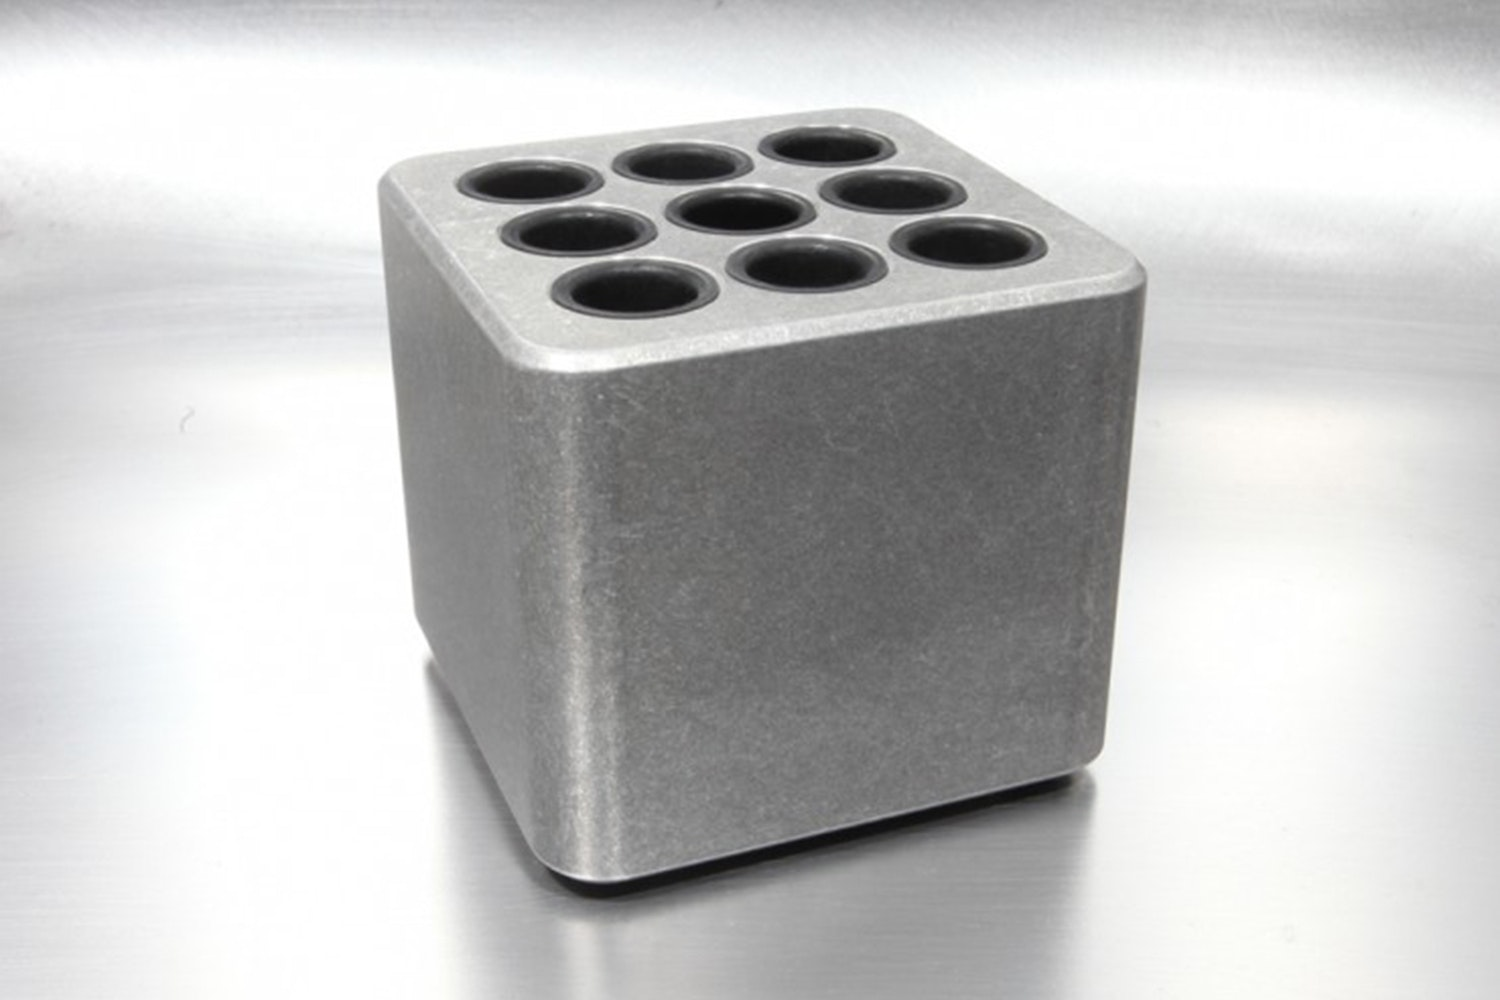 Tumbled Aluminum -pen holder (holds 9 pens)